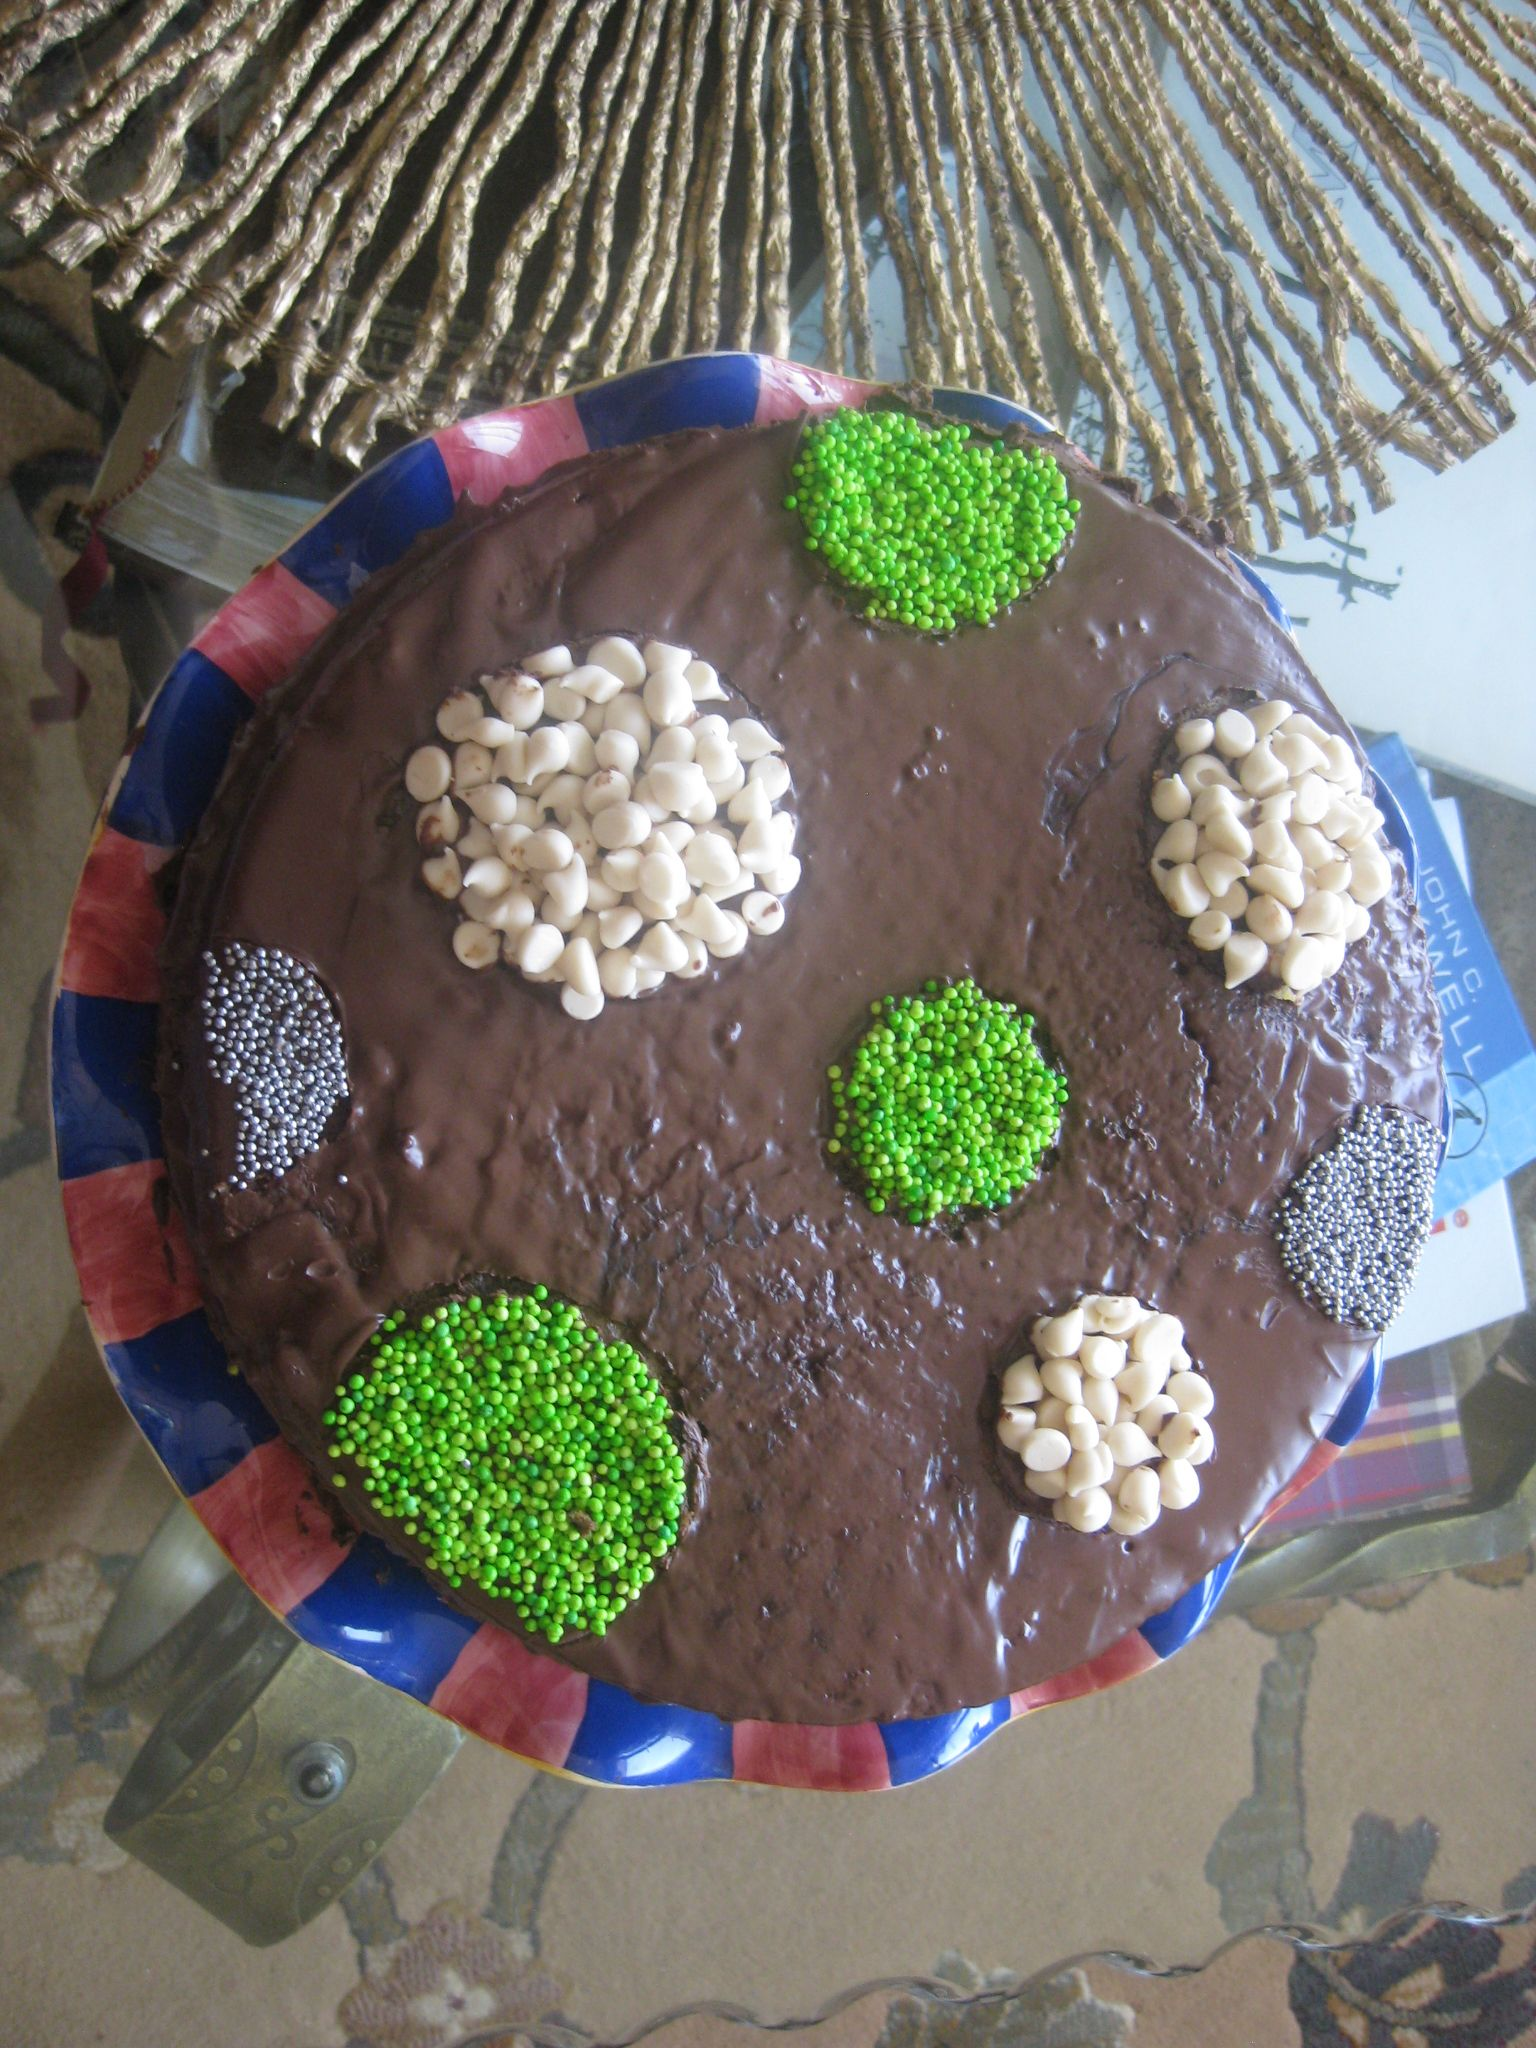 Polka dot cake!  Use cookie cutters as stencils to make different shapes on top of your cakes.   Use any cake, any topping, any cookie cutter shape and any sprinkles or other decorations.